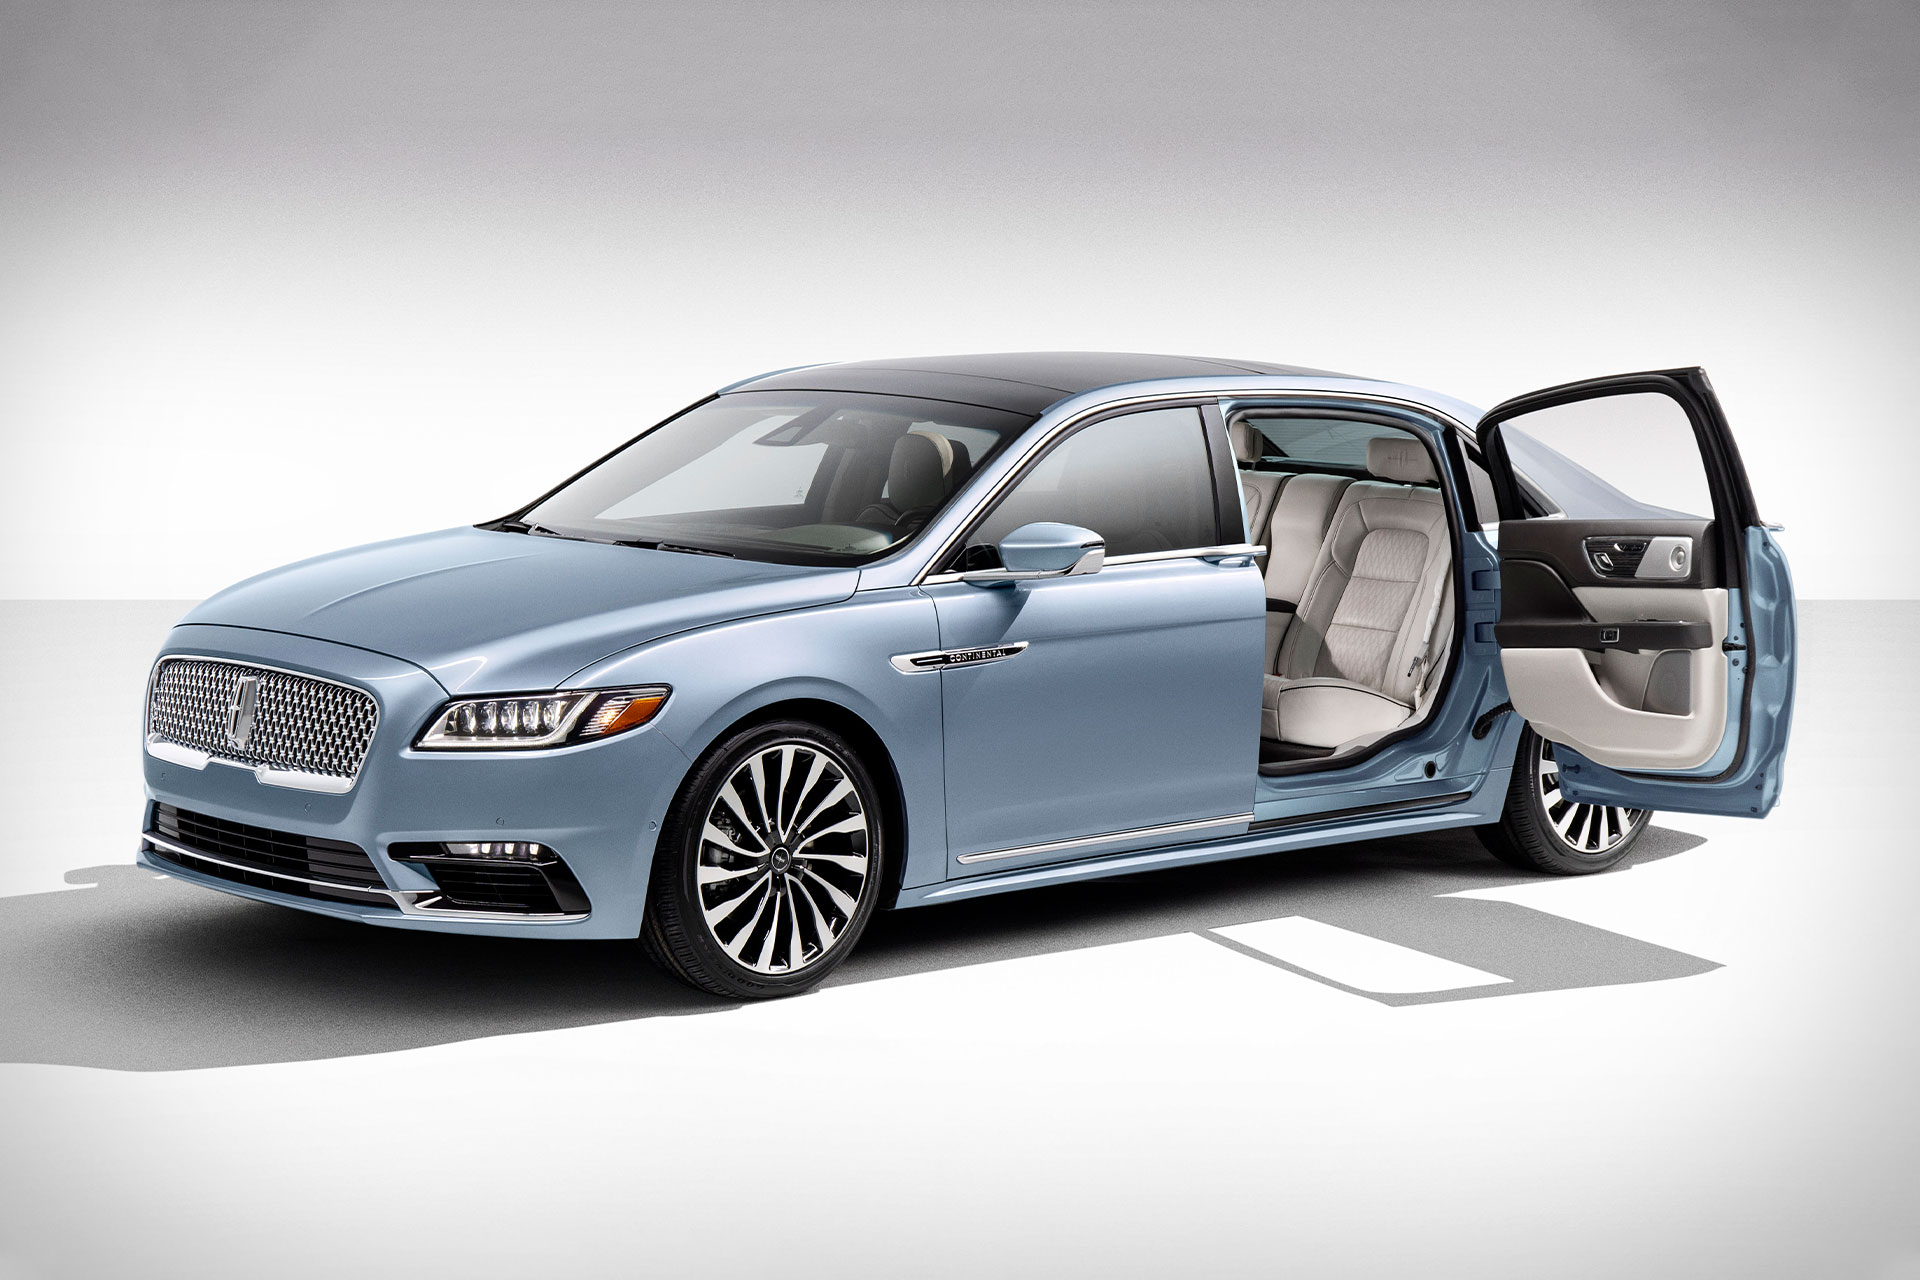 New 2019 Lincoln Continental has rear-opening doors ...